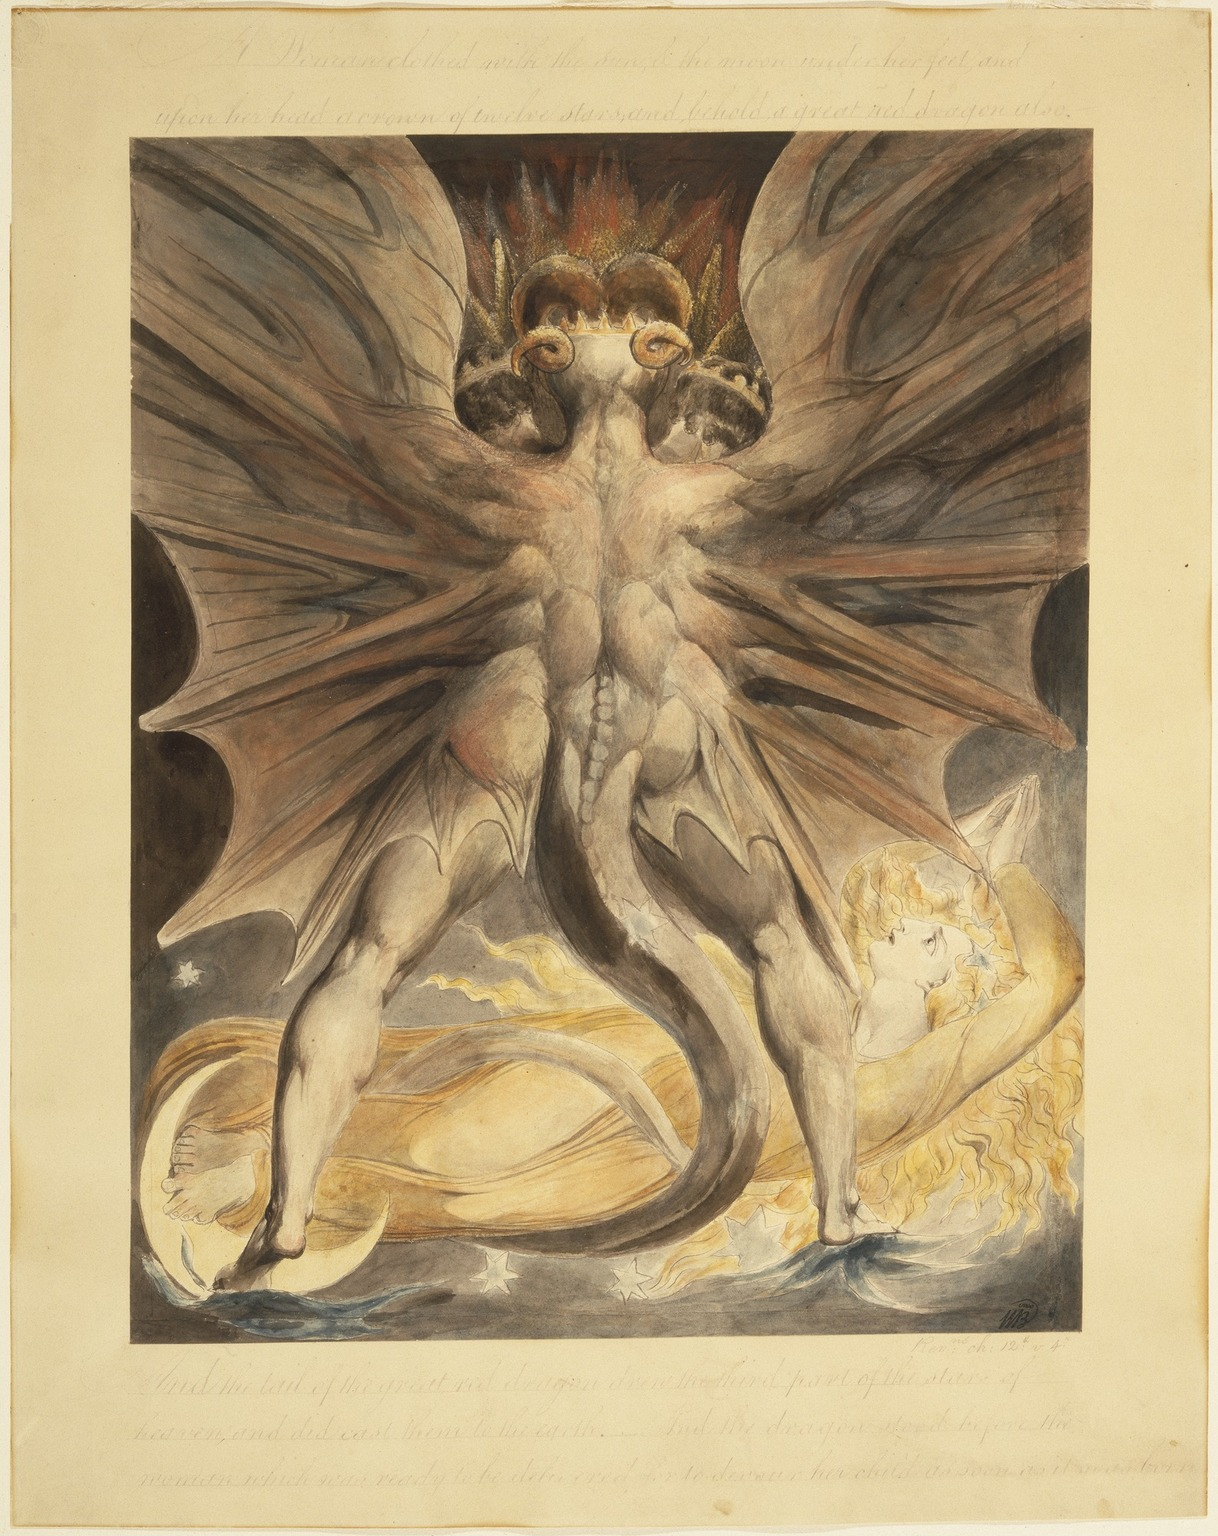 william blake most famous work